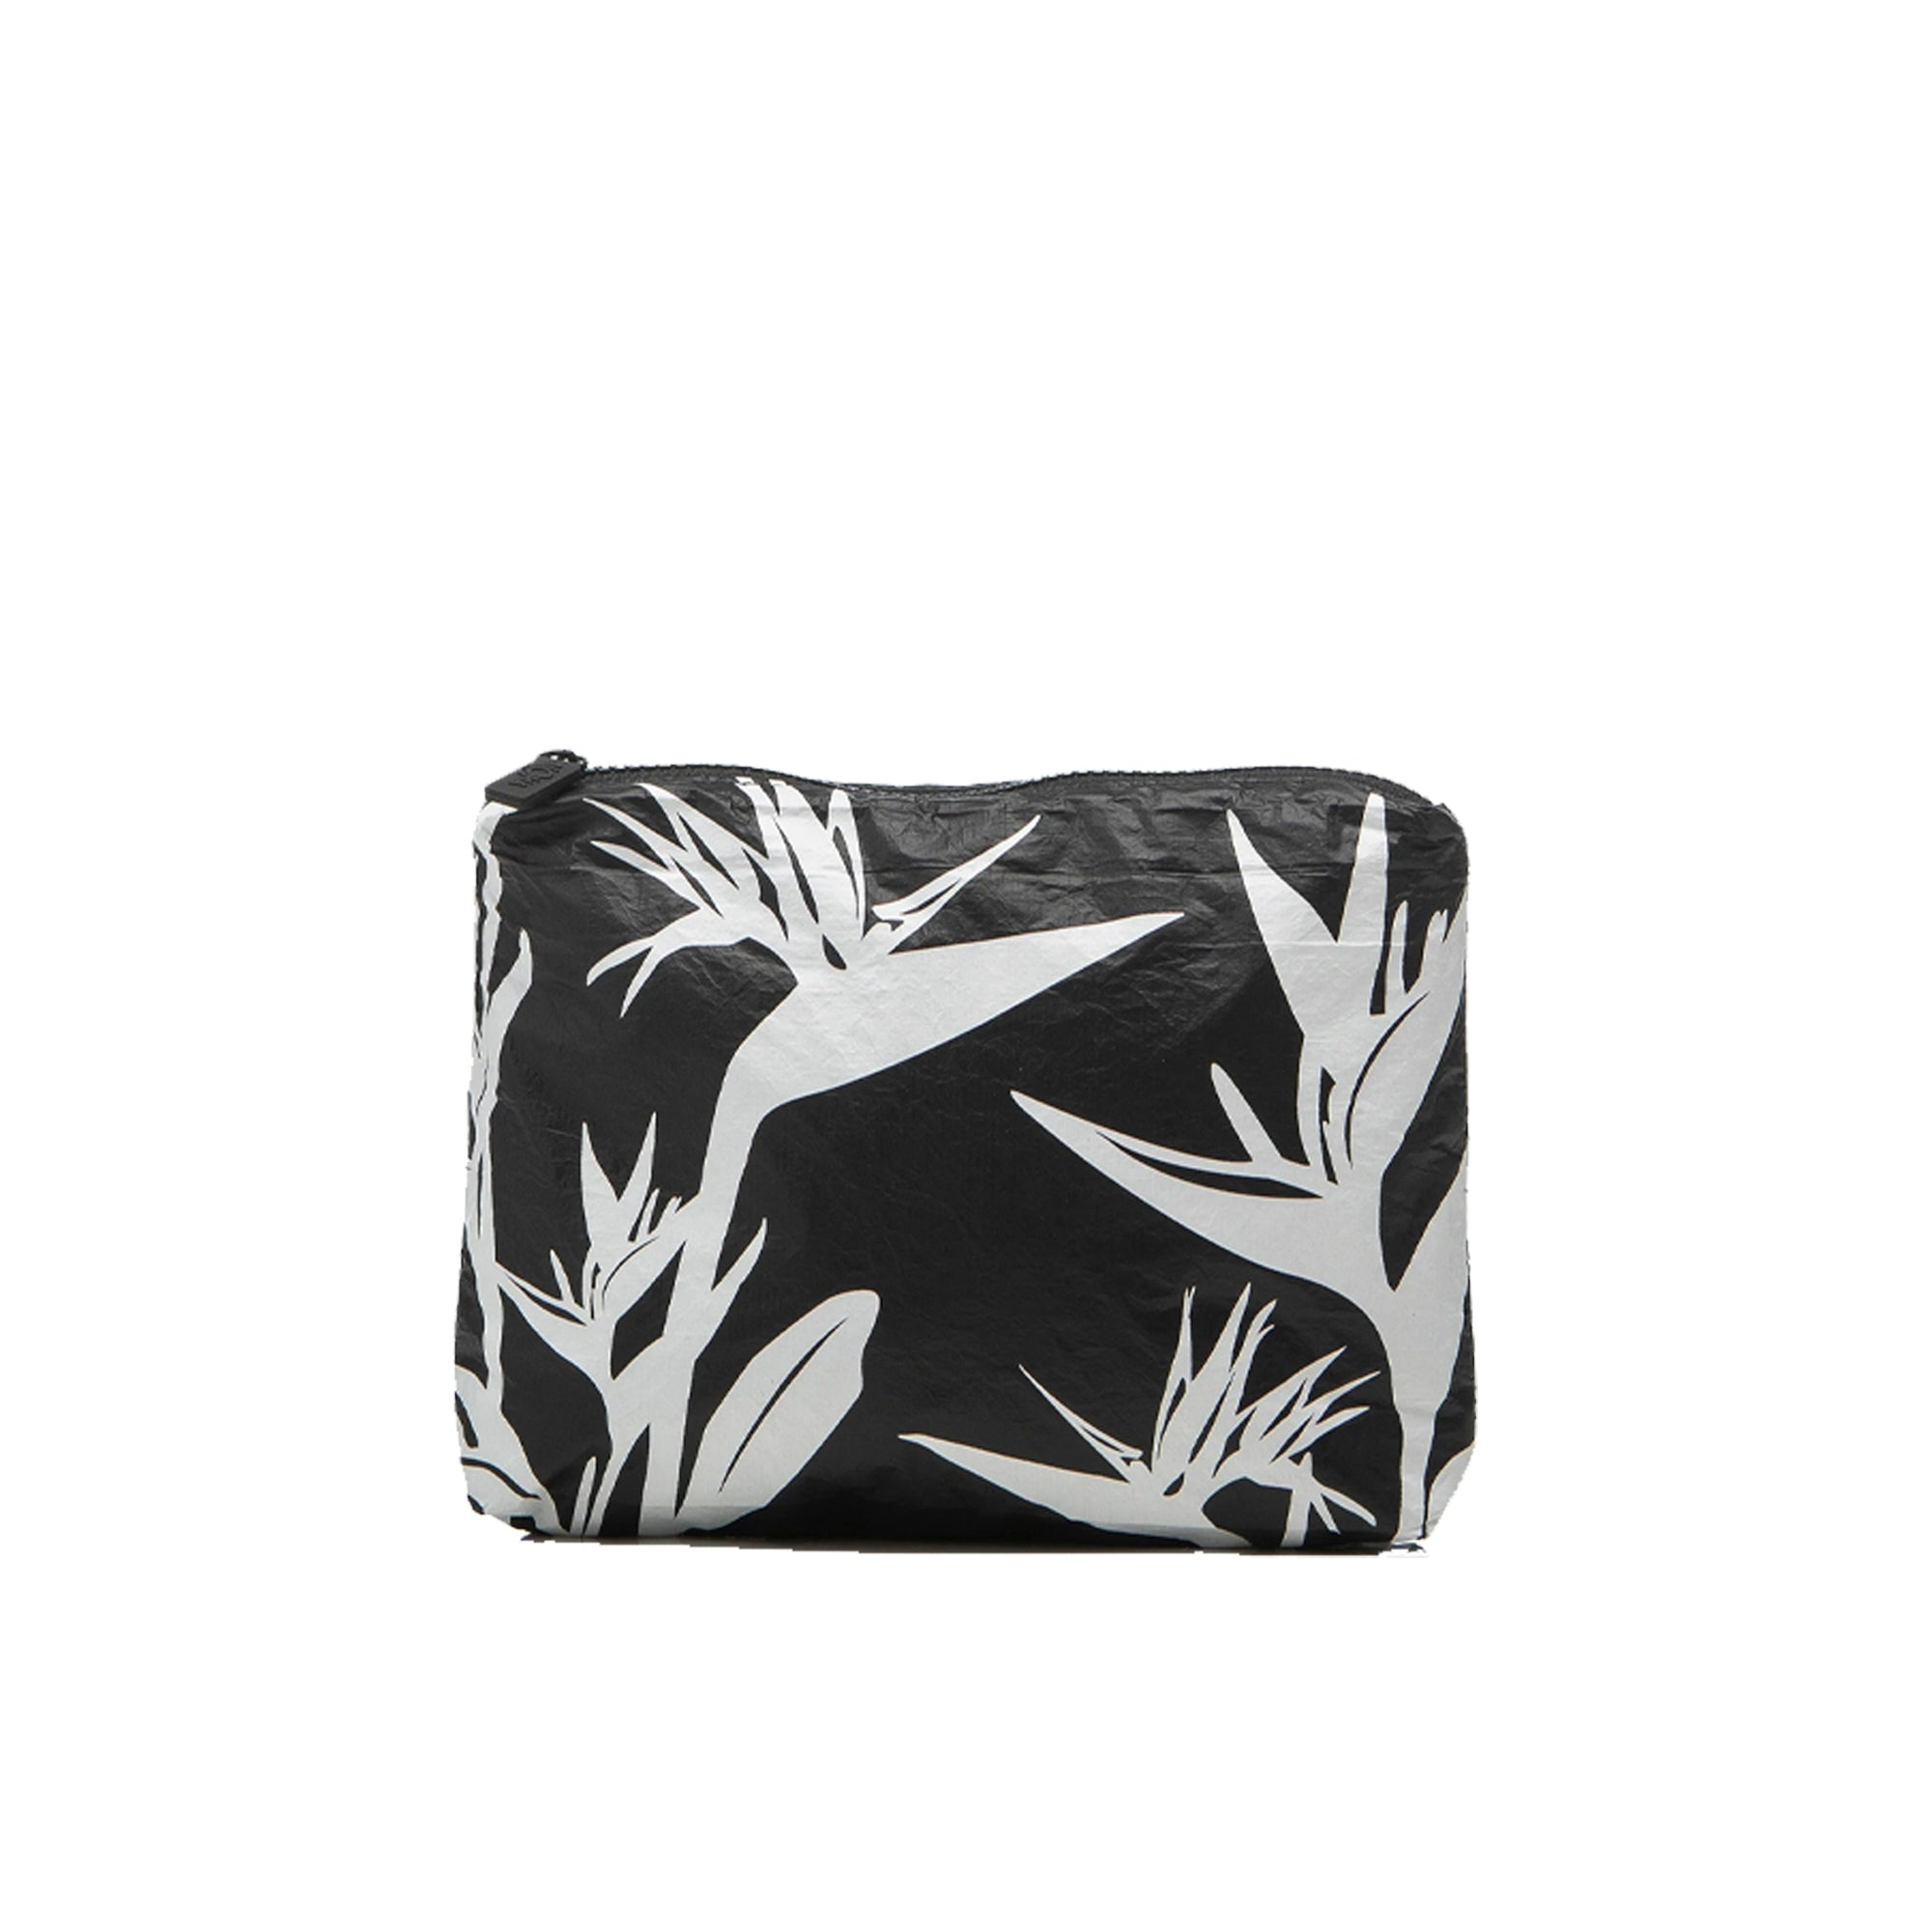 BIRDS IN PARADISE POUCH SMALL BLACK